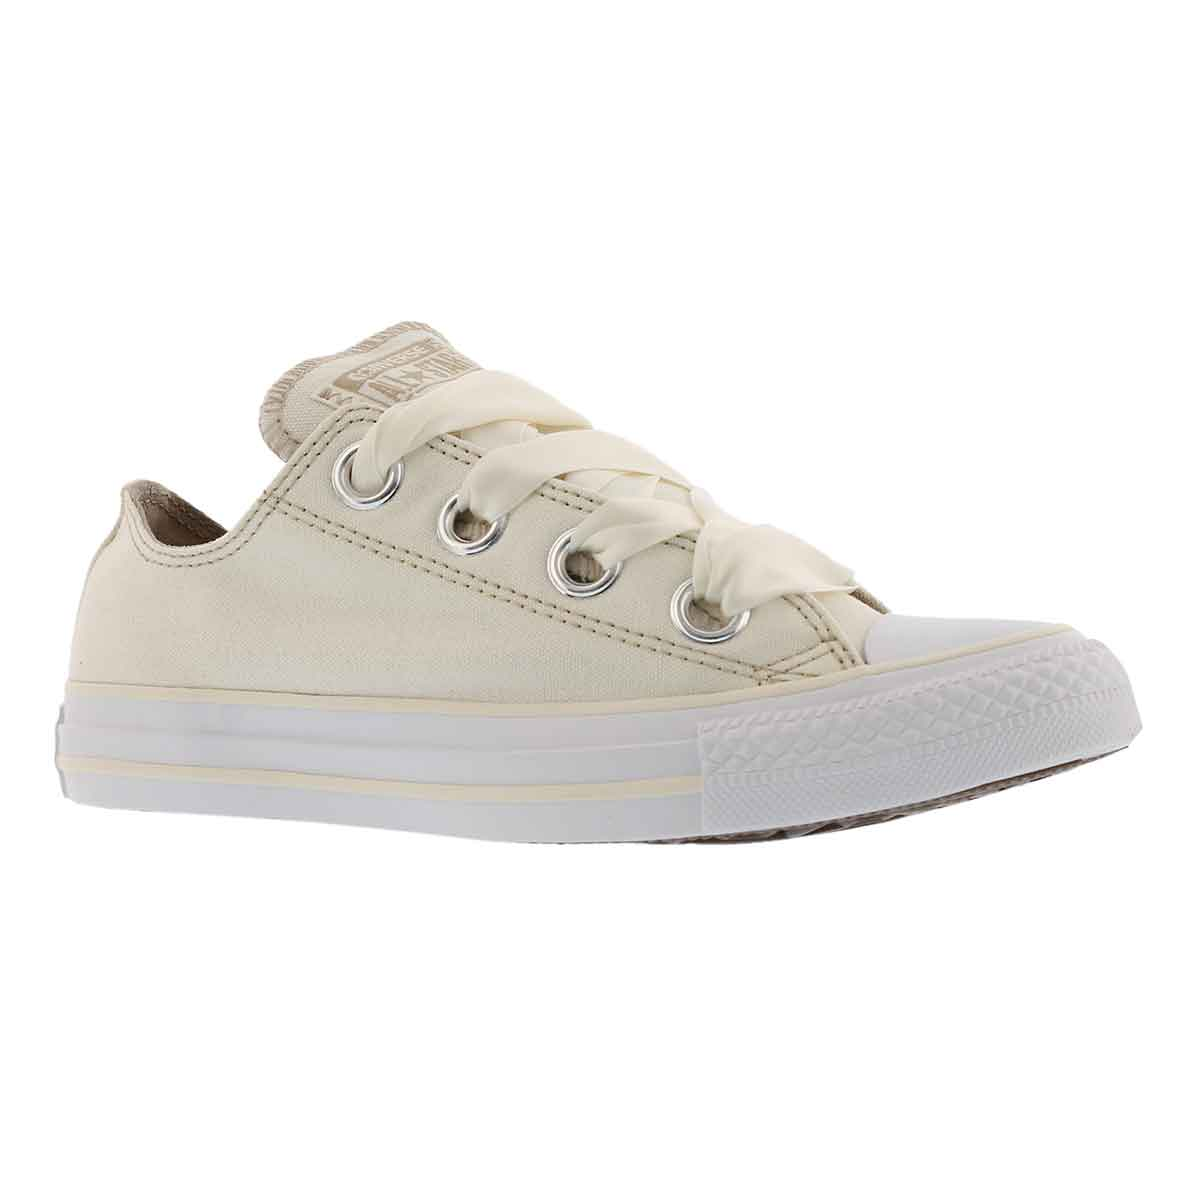 Women's CT ALL STAR BIG EYELETS egret/kki sneakers